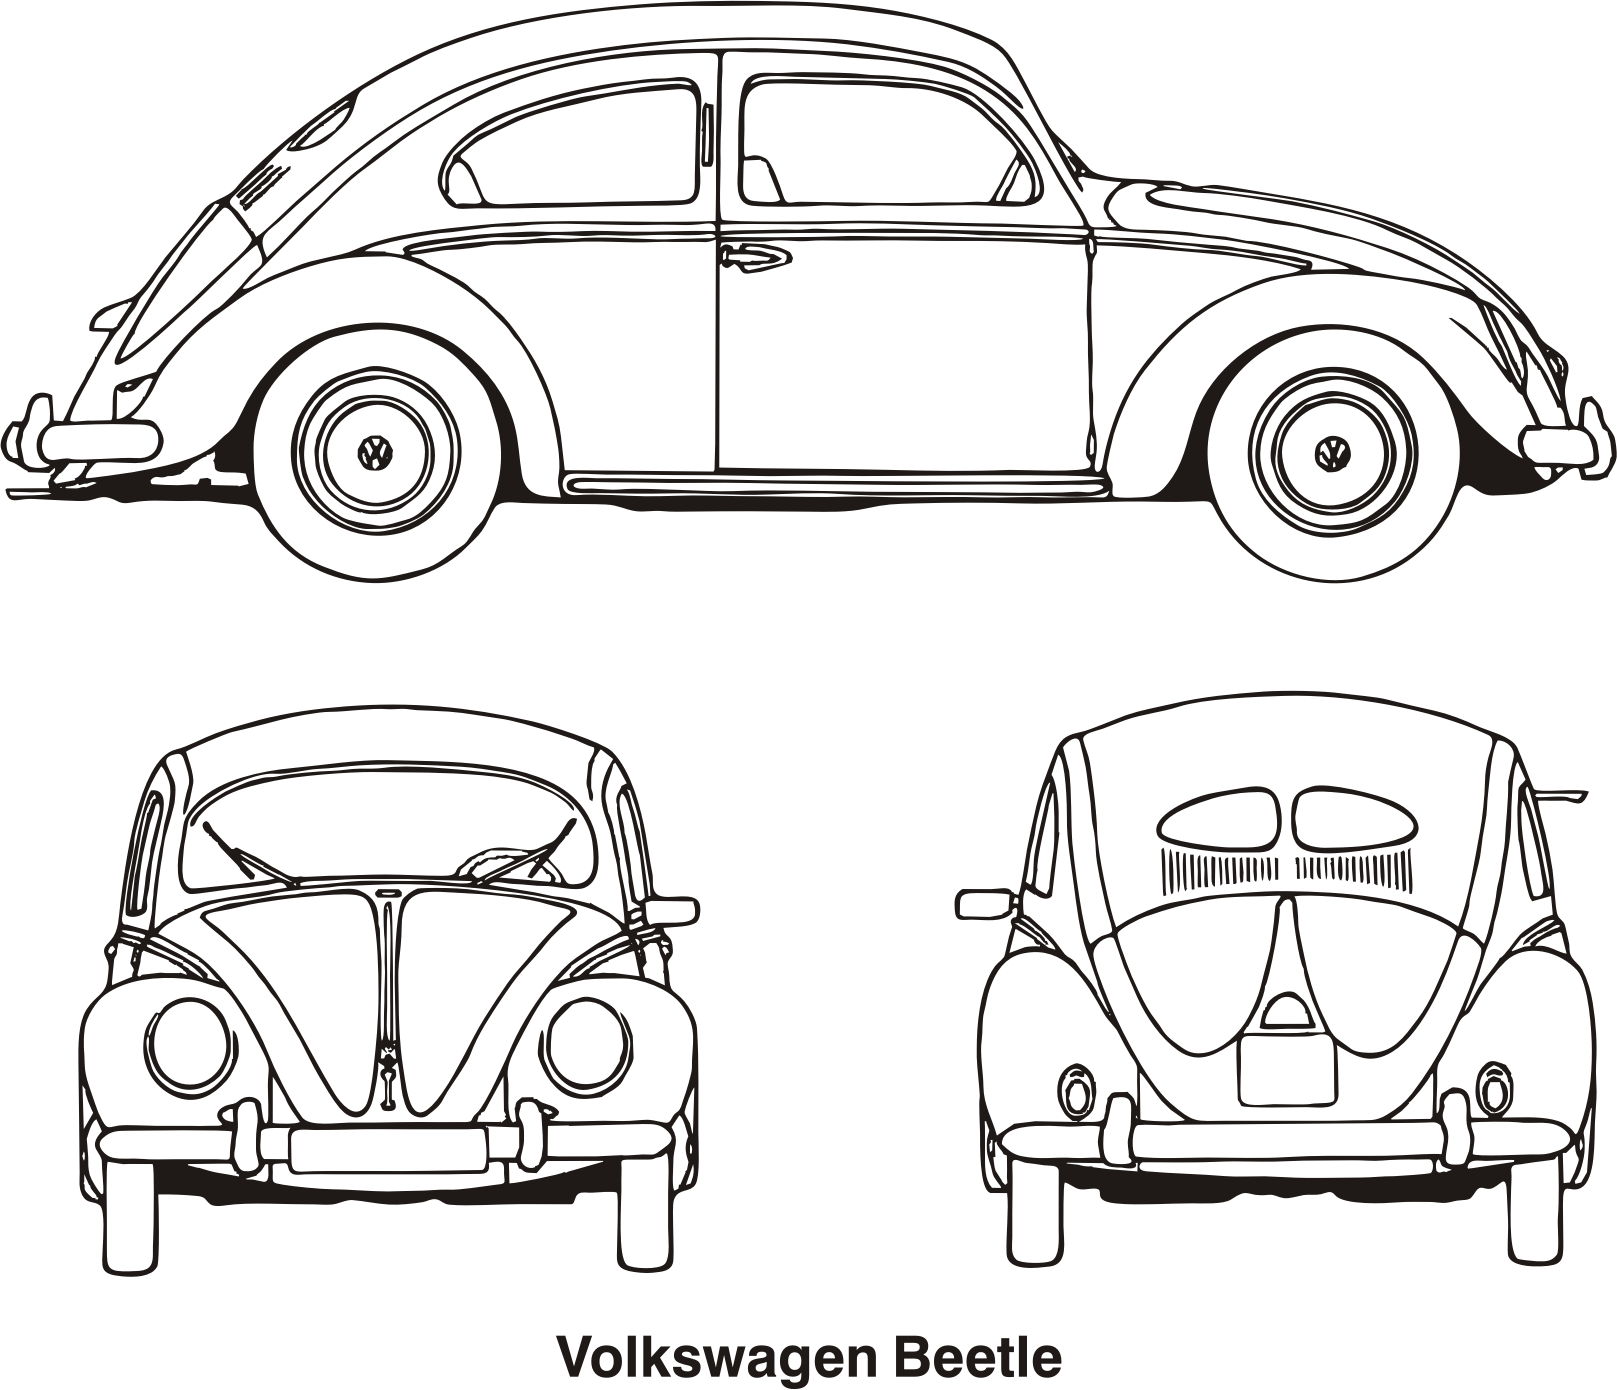 Clipart car beetle. Volkswagen year icons png